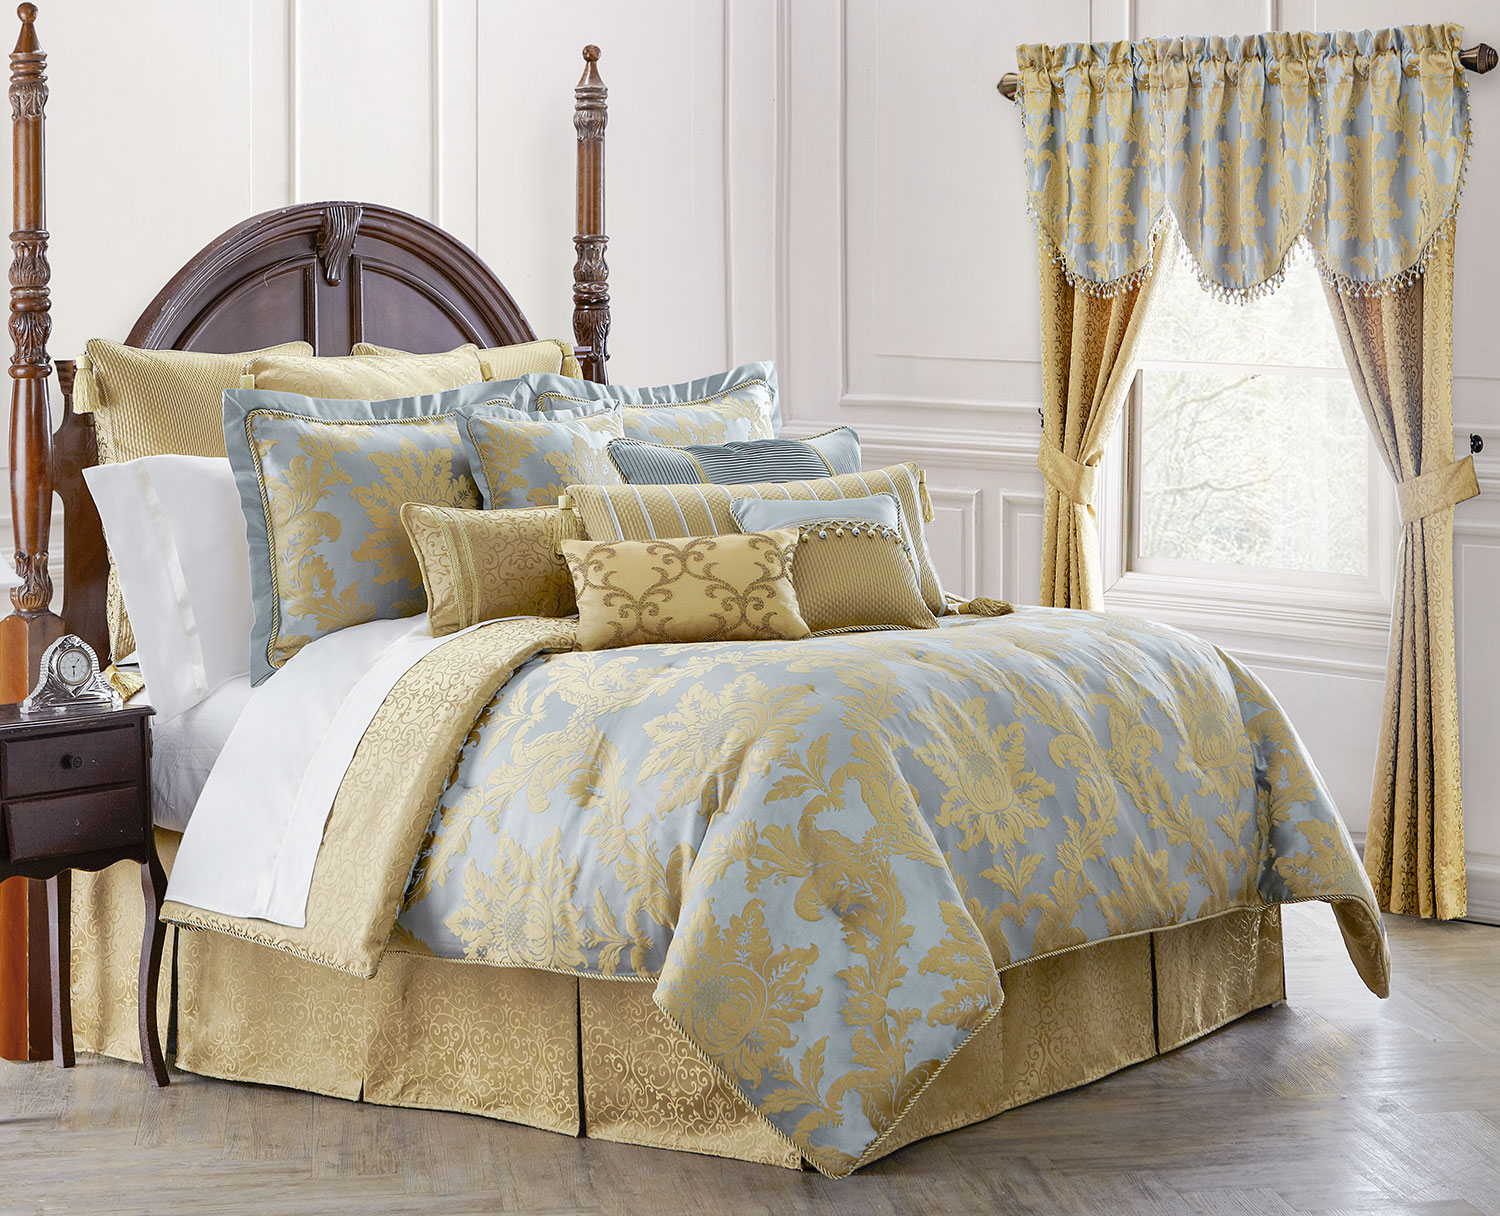 royal natori bedding with long curtains and unique floor